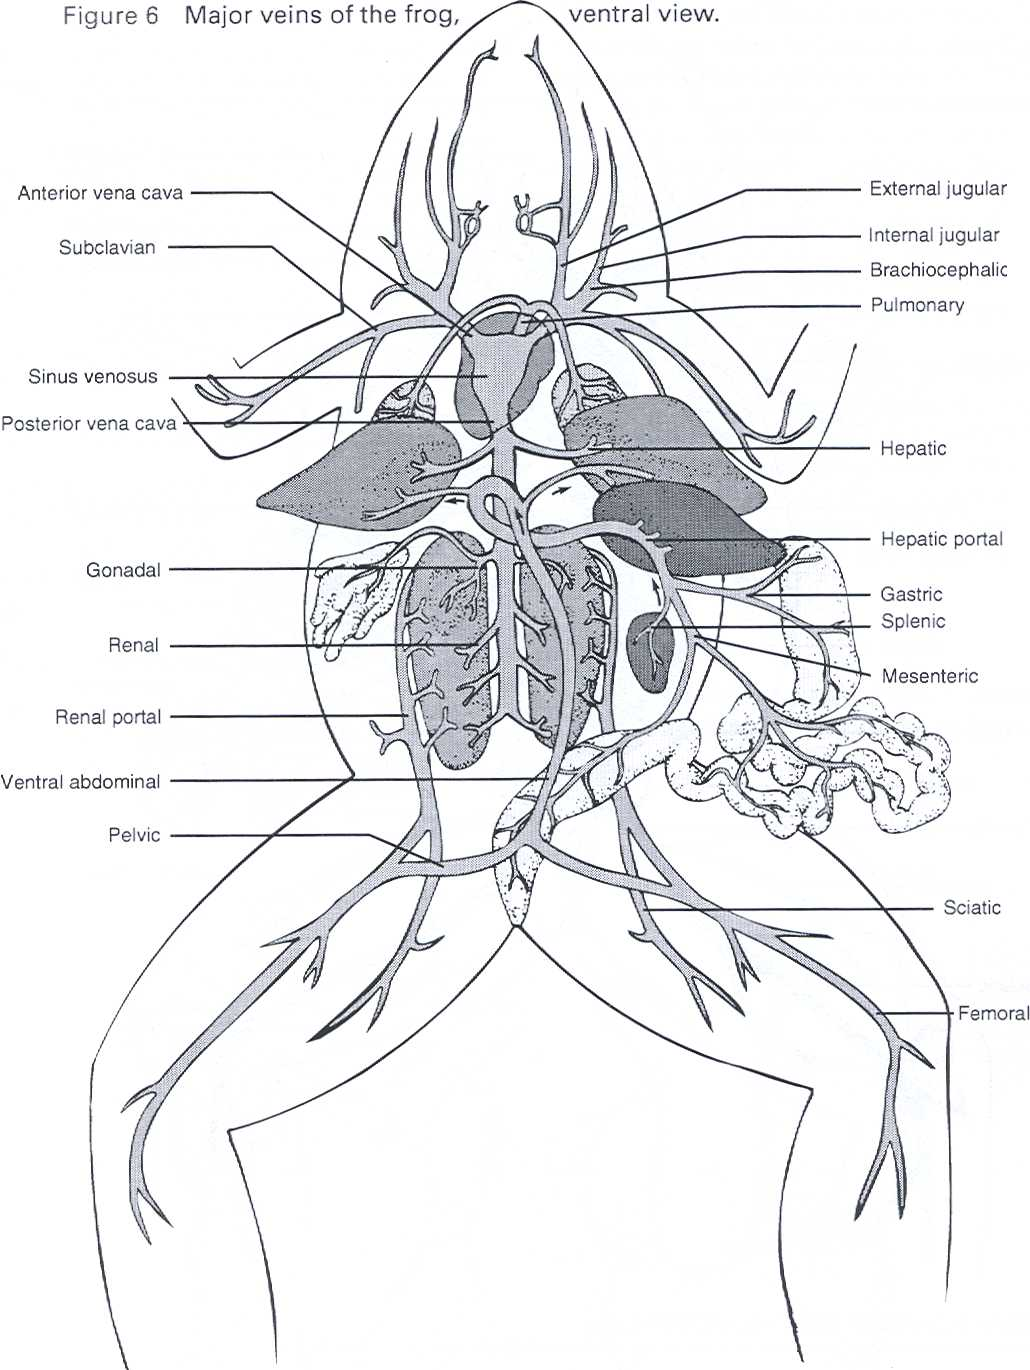 Frog Circulatory System Diagram